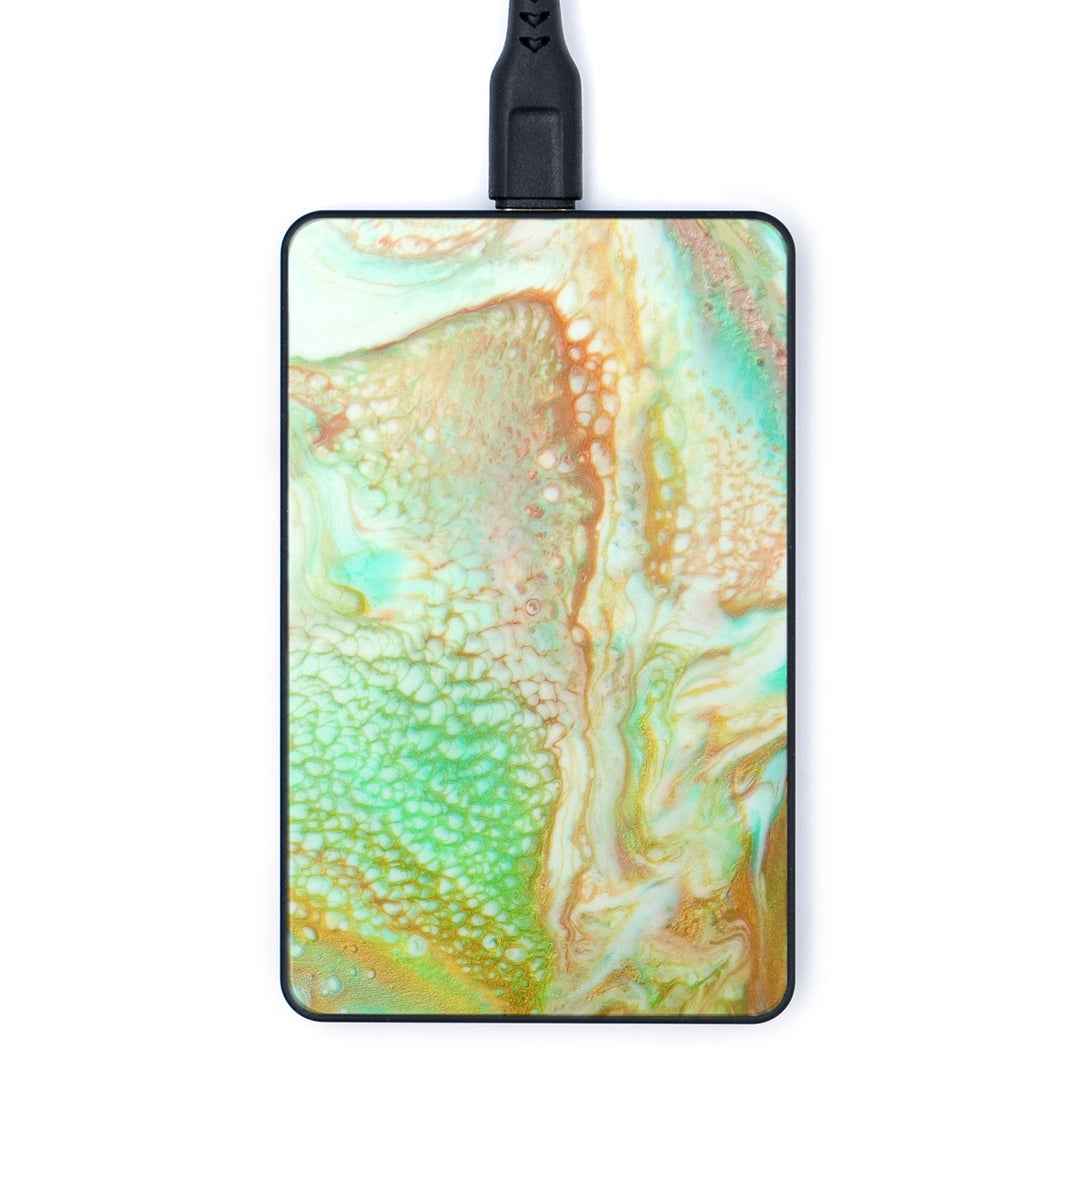 Thin ResinArt Wireless Charger - Georgianne (Teal & Gold, 347577)